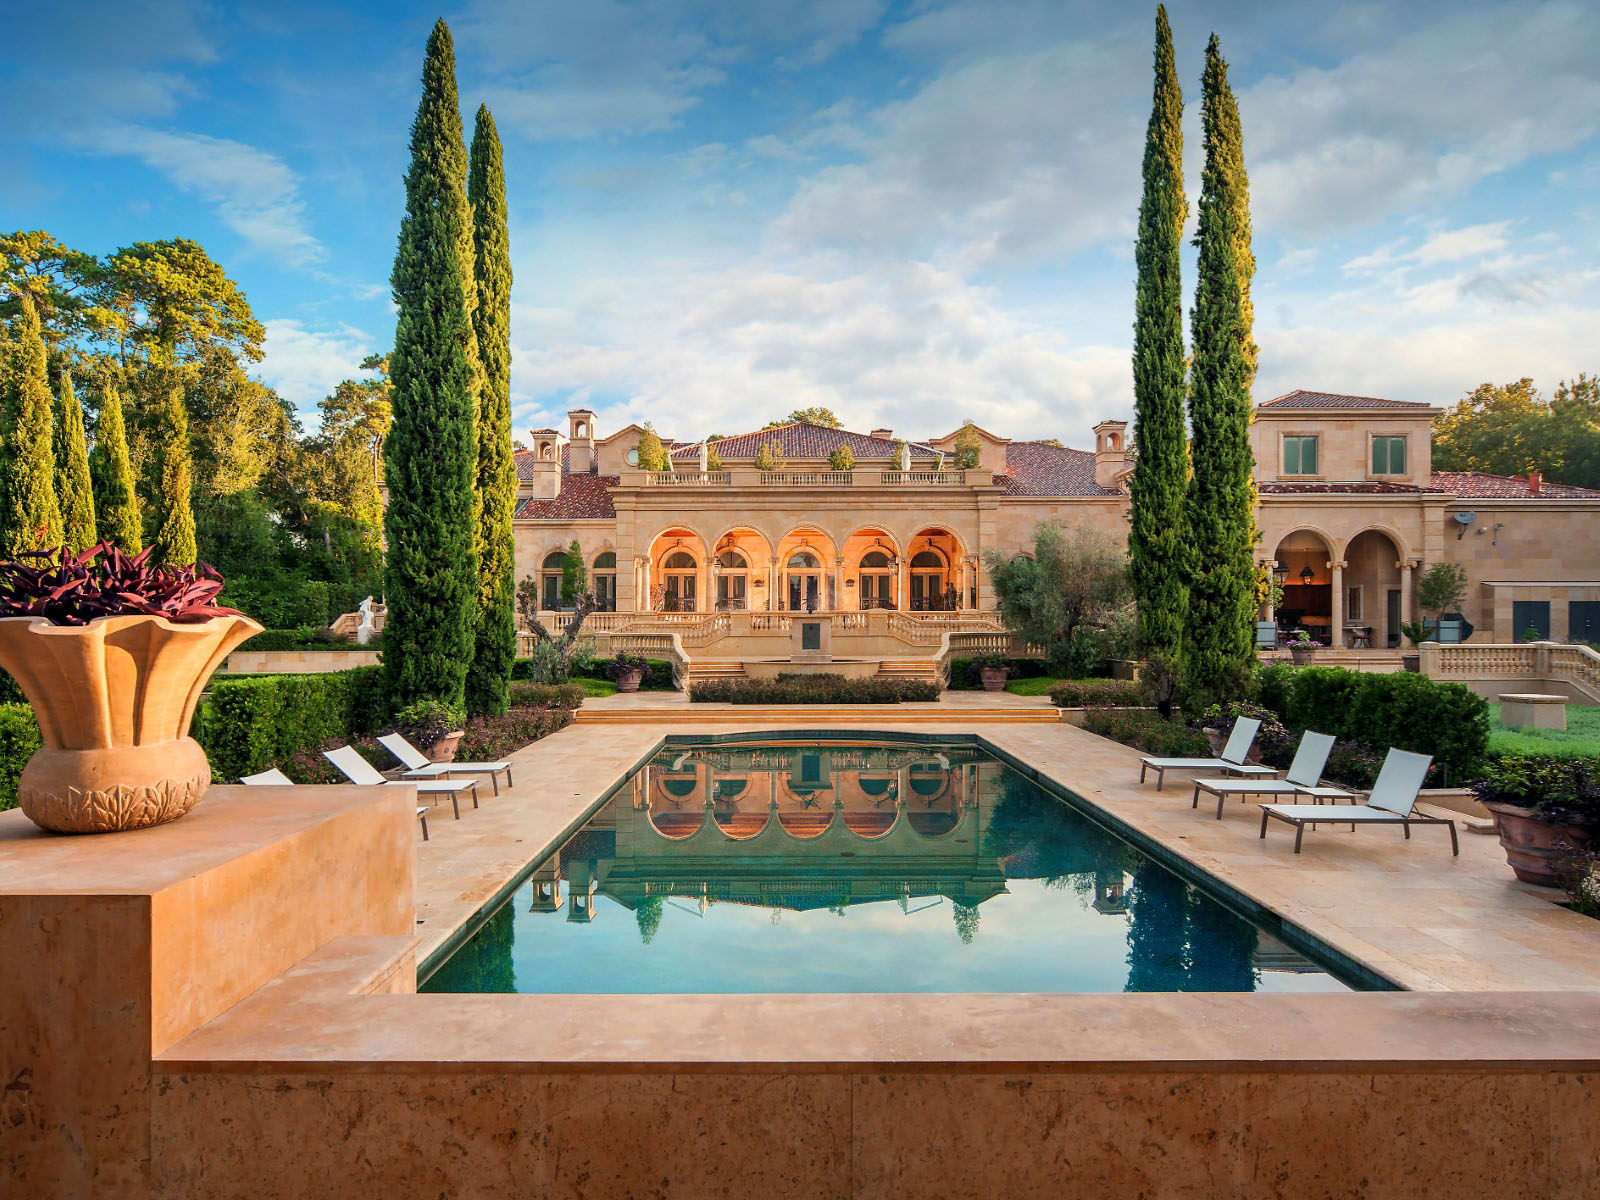 Chateau Mansion In Houston Texas Is A Masterpiece Of Luxury And